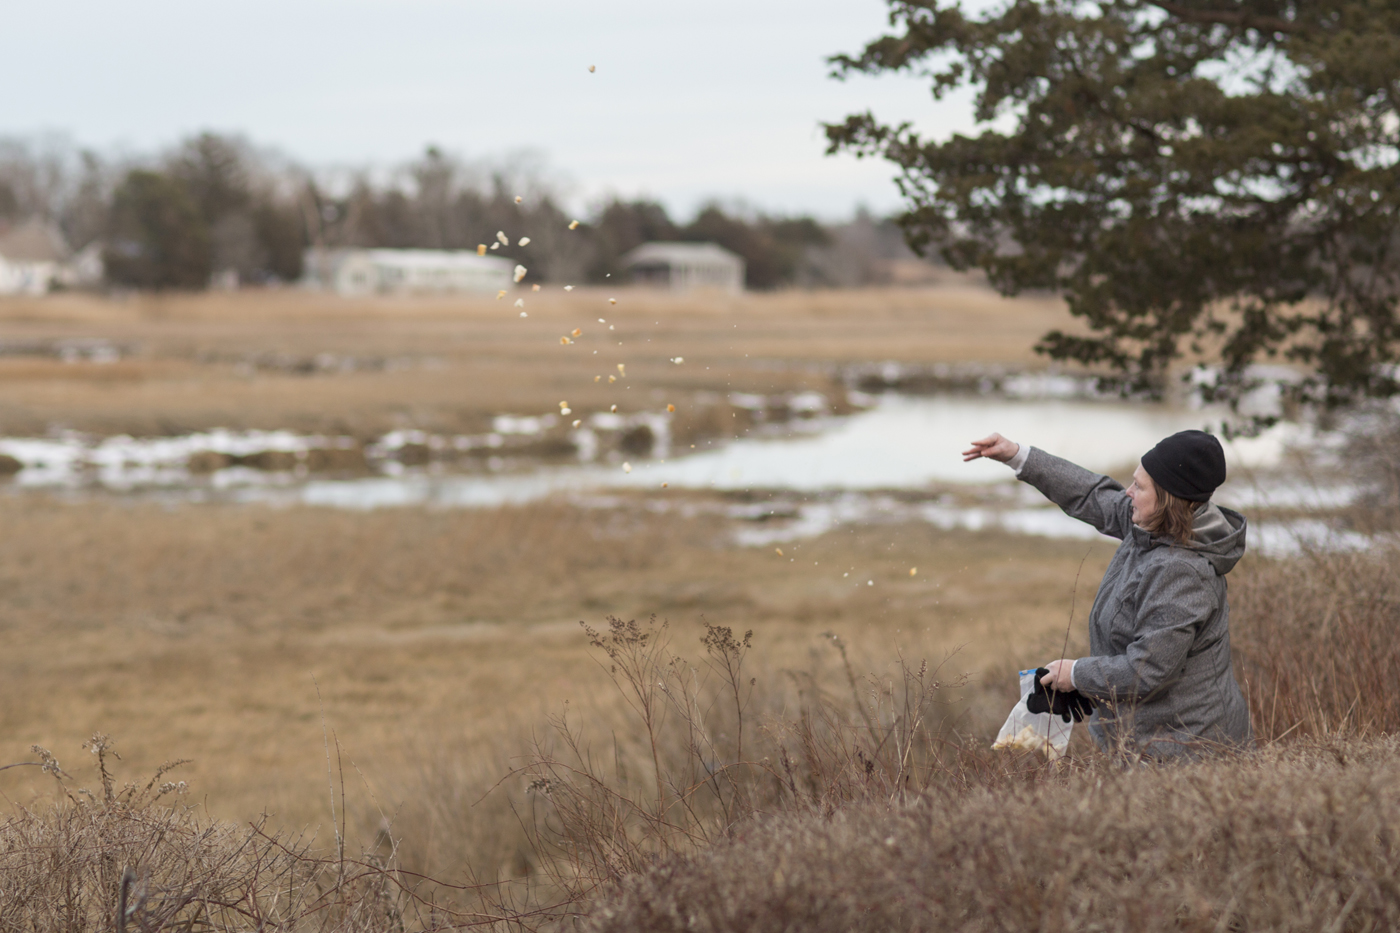 Ramona throws food to birds in a marsh.